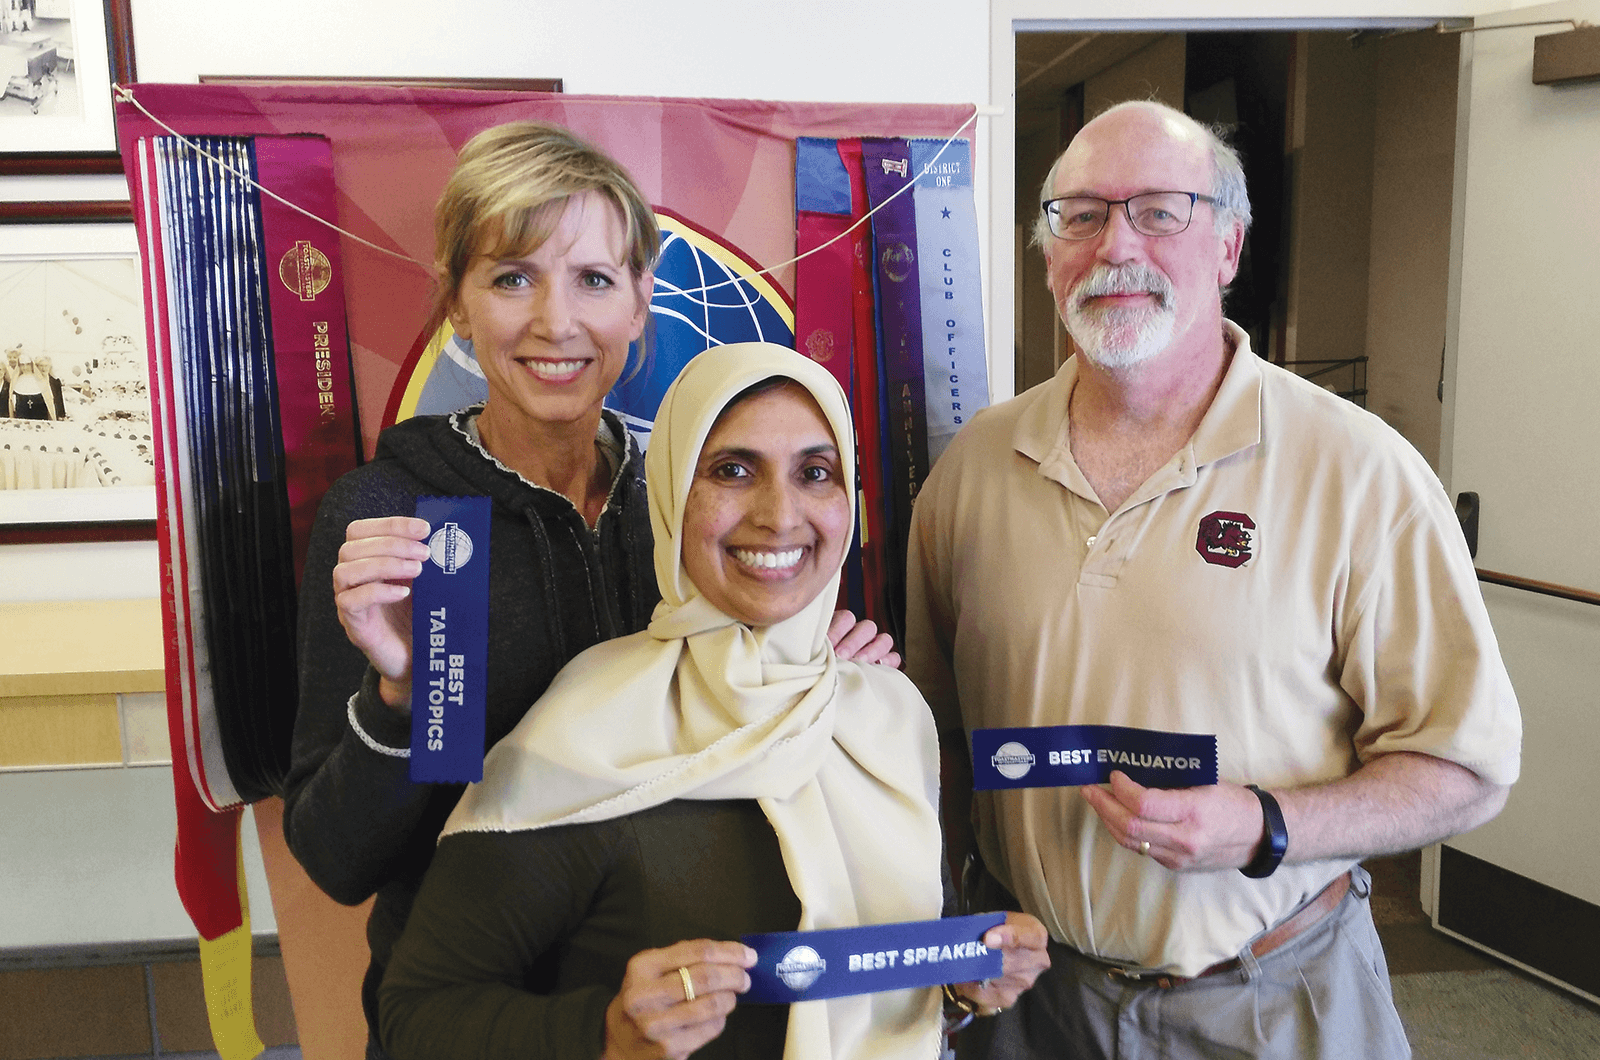 Heidi Swan, Bilquis Ahmed and Ron Maroko pose with Toastmasters ribbons at a Torrance Chamber of Commerce club meeting in California.